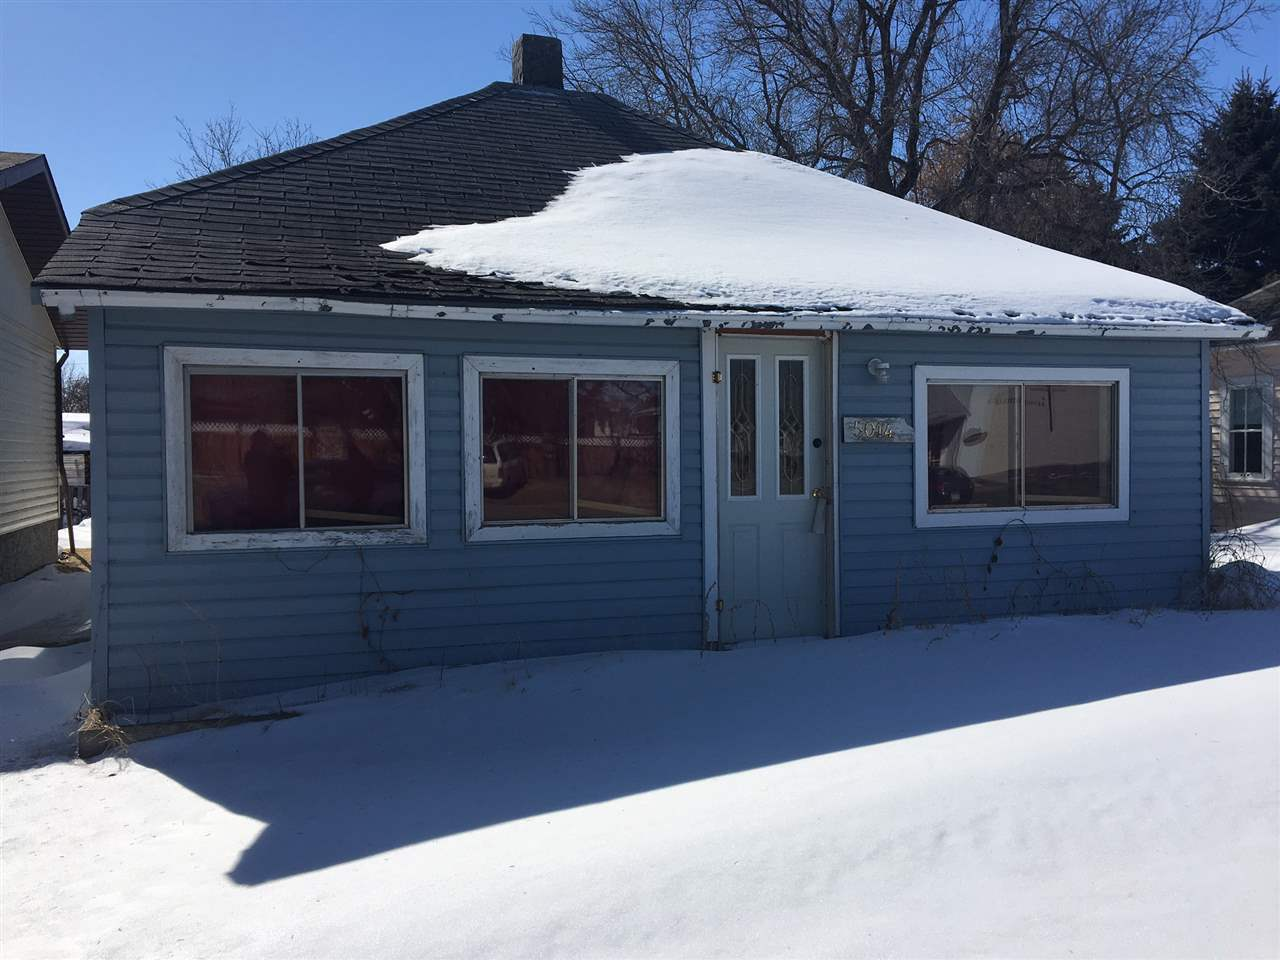 FIXER UPPER IN SEDGEWICK!!! THIS BUNGALOW IS ON A LARGE DOUBLE LOT. SO MUCH POTENTIAL WITH A SOLID CONSTRUCTION.